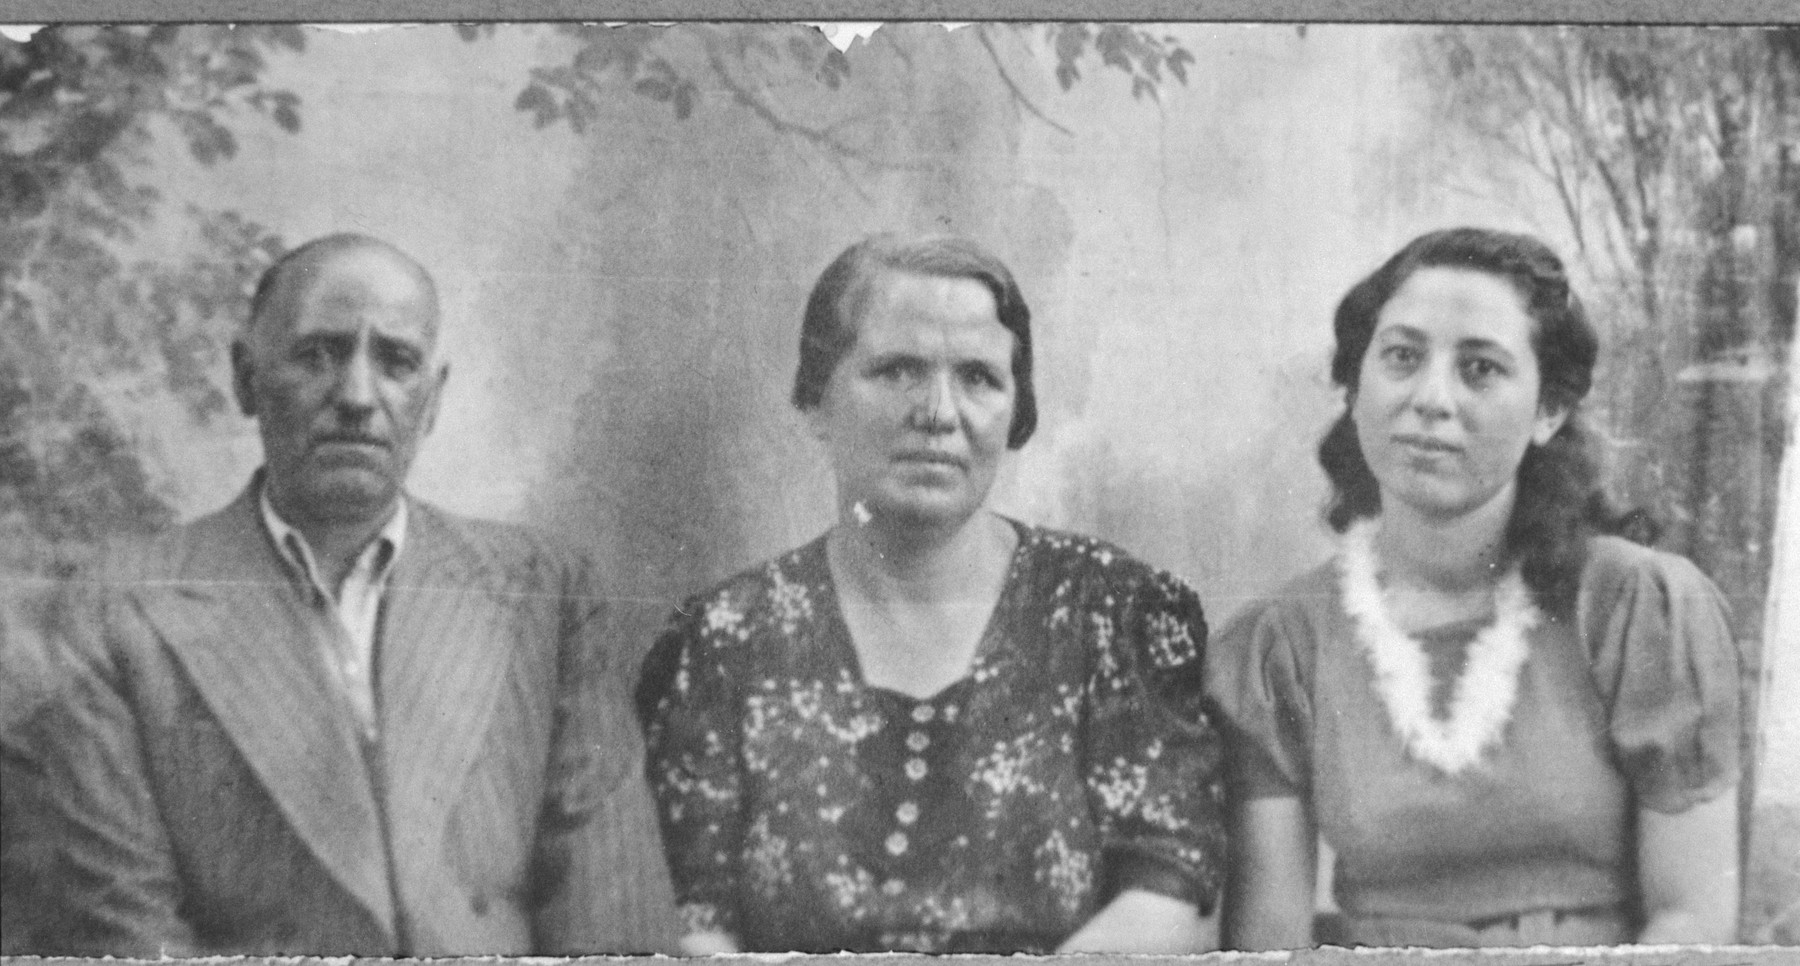 Portrait of Shua Negri, son of Isak Negri, Shua's wife, Rebeka, and his daughter, Alegra.  Shua was a second-hand dealer and Rebeka, a student.  They lived at Drinska 93 in Bitola.